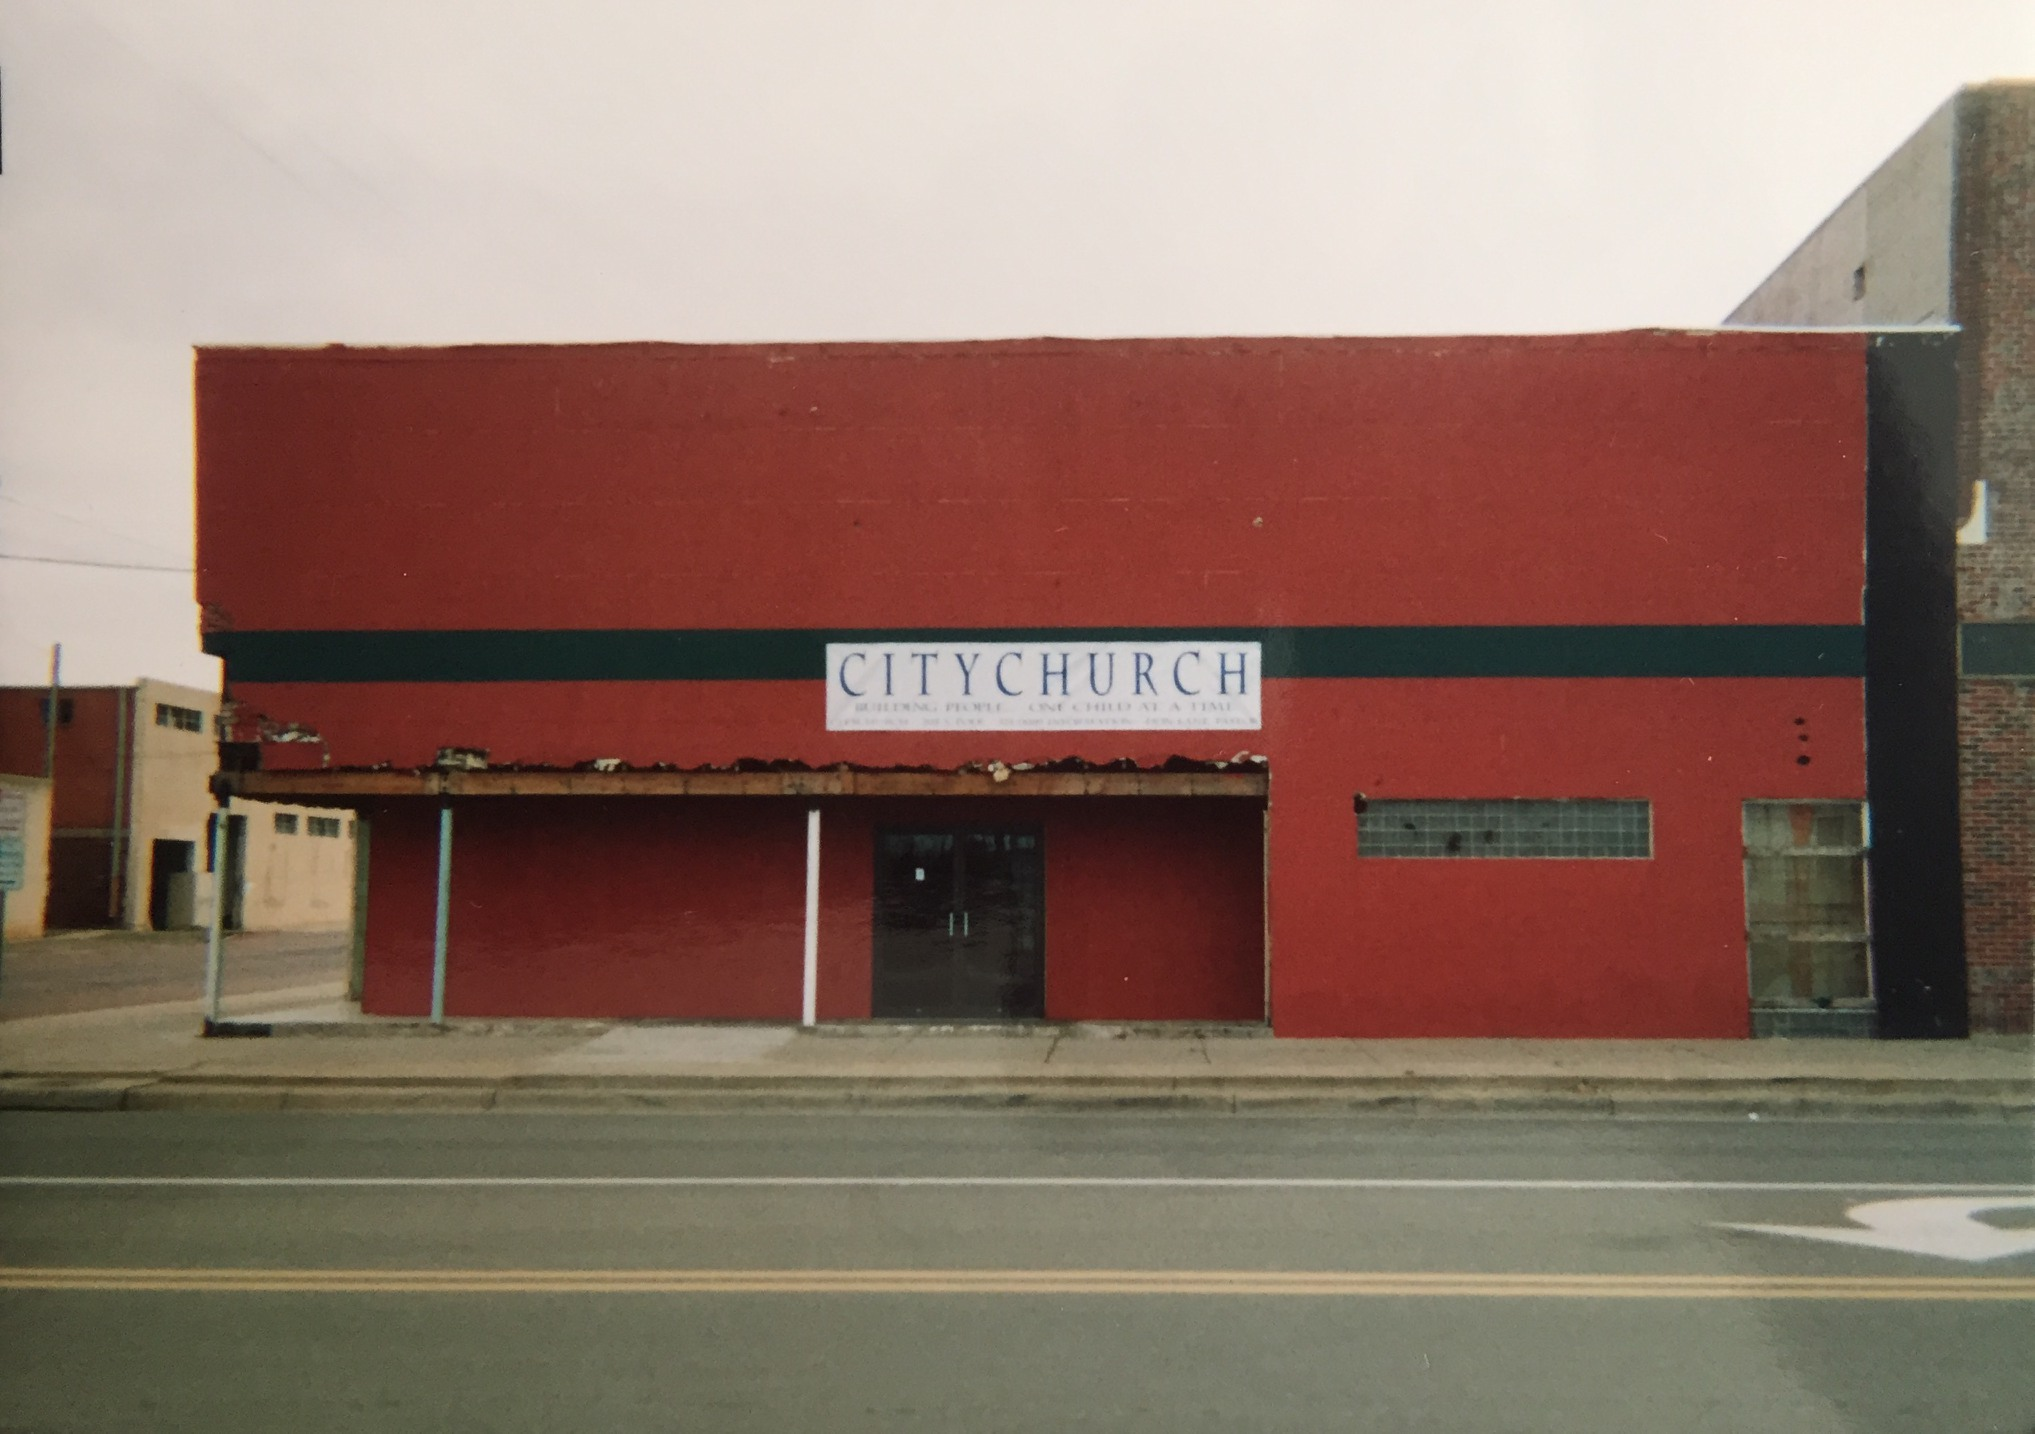 An early picture of the adjacent building that was added to our first Citychurch building.